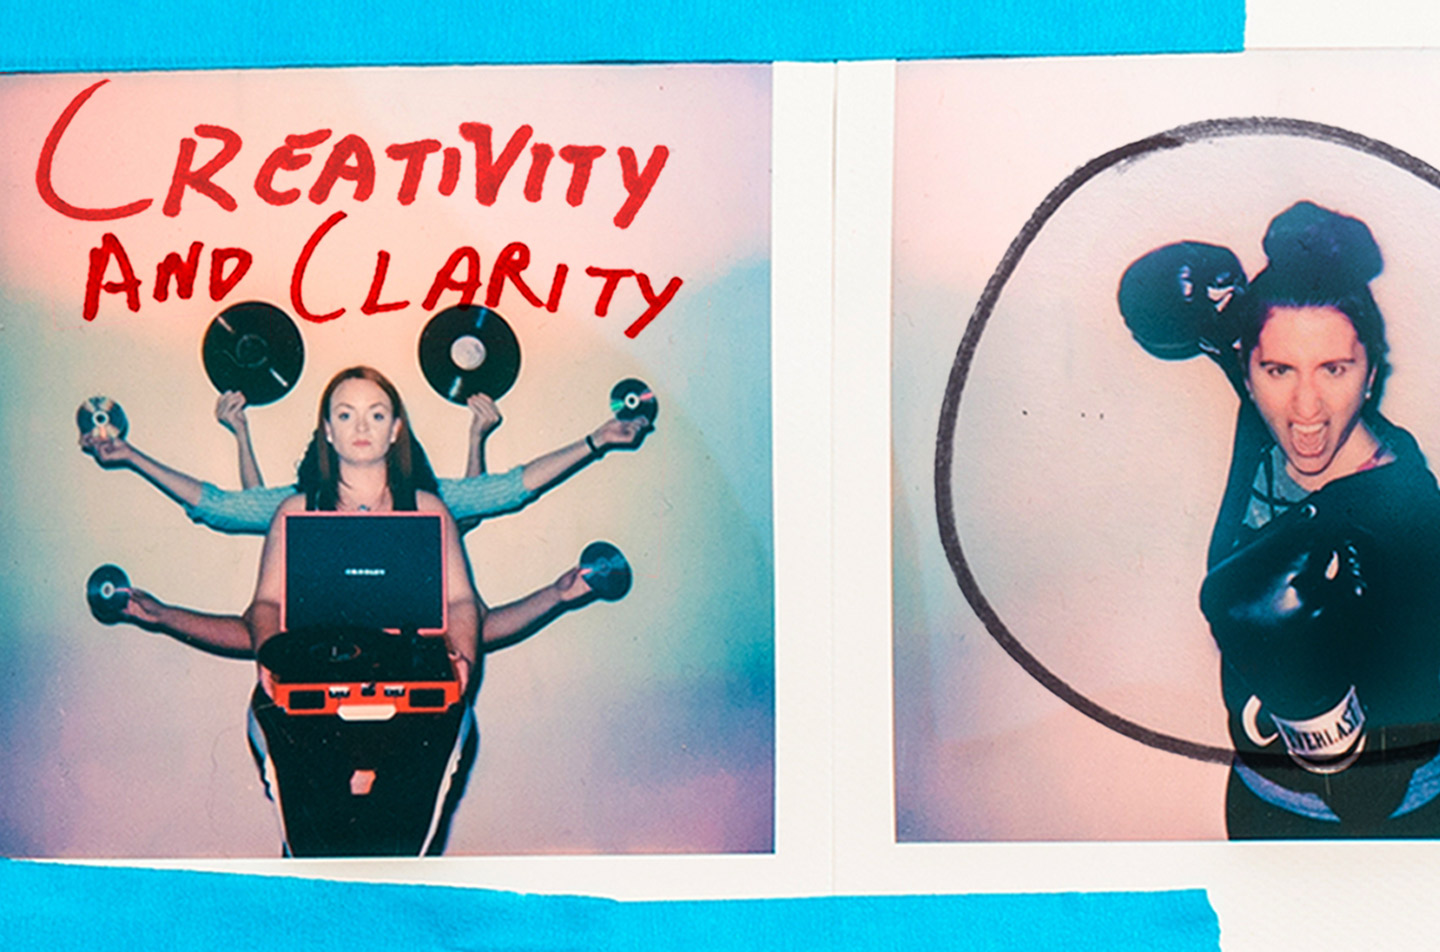 Let Go - They Key tos Great Work and better client agency relationships: A Photo that highlights creativity and clarity